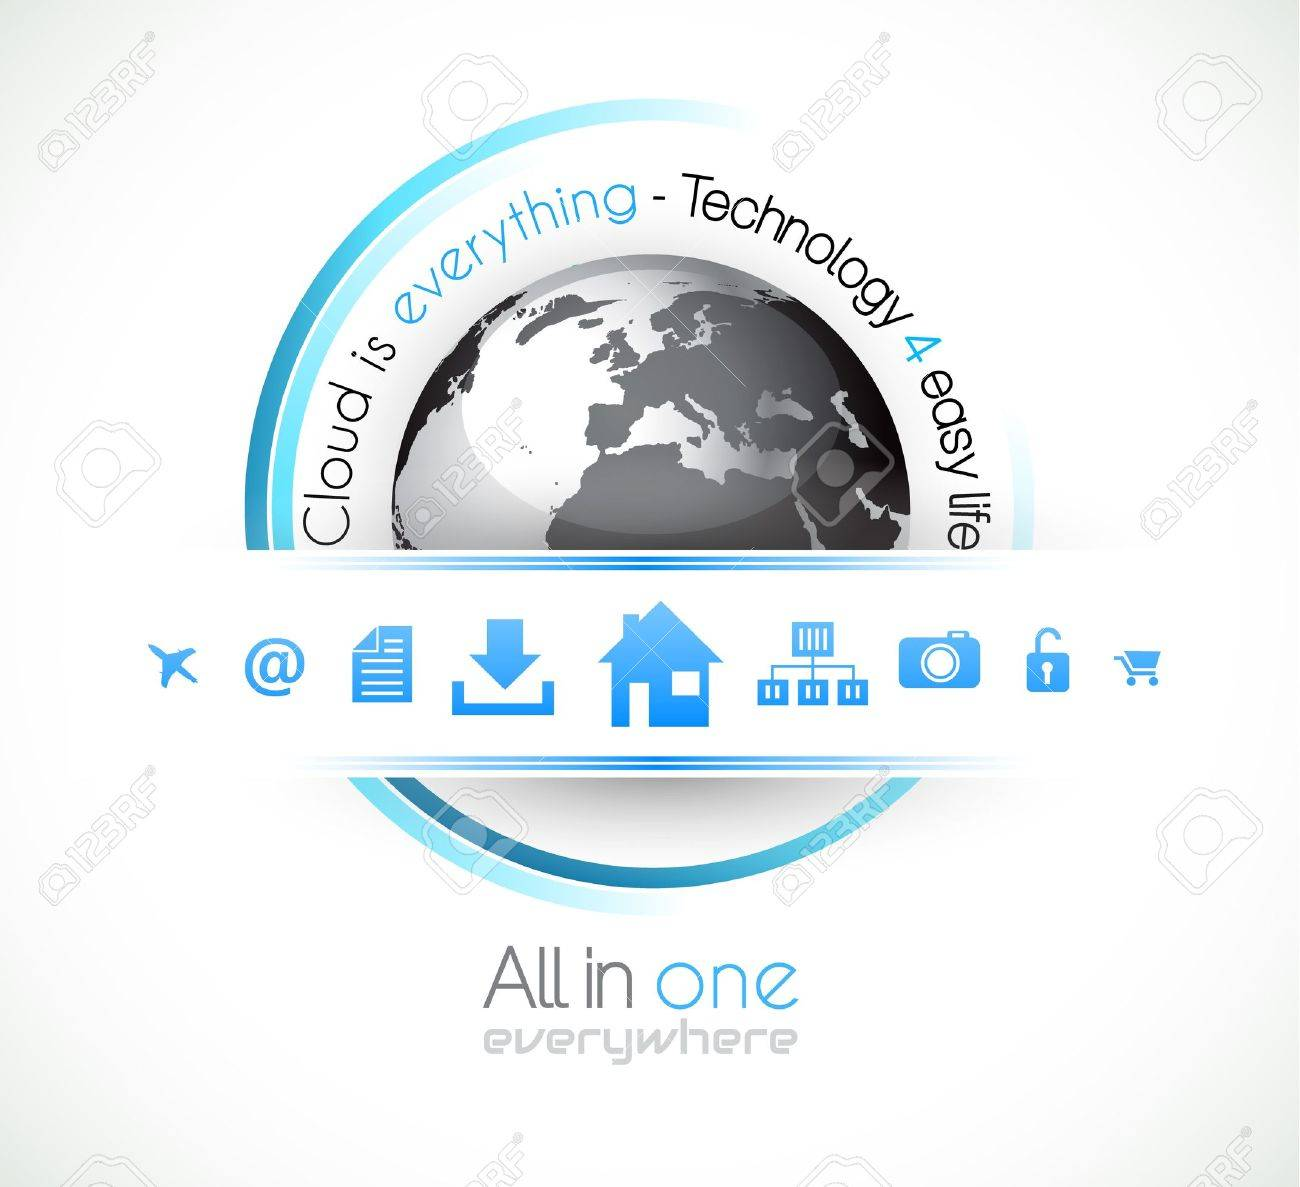 Cloud Computing conceptual image poster with a lot of themed